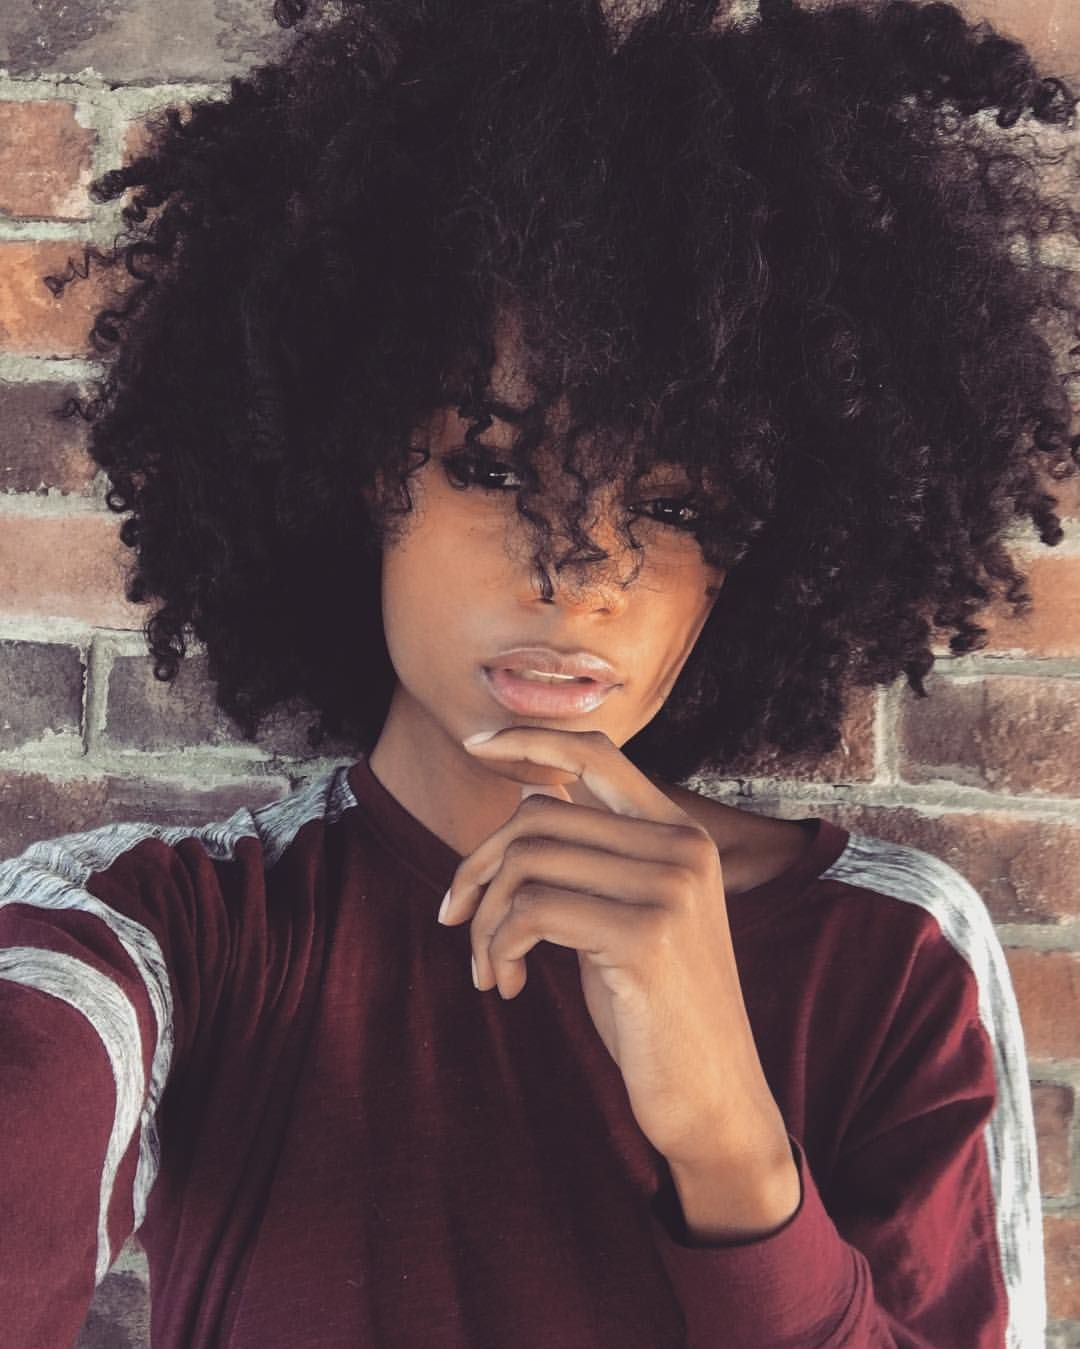 ebony townsend (@ebonytown) on instagram: curly fro. natural hair